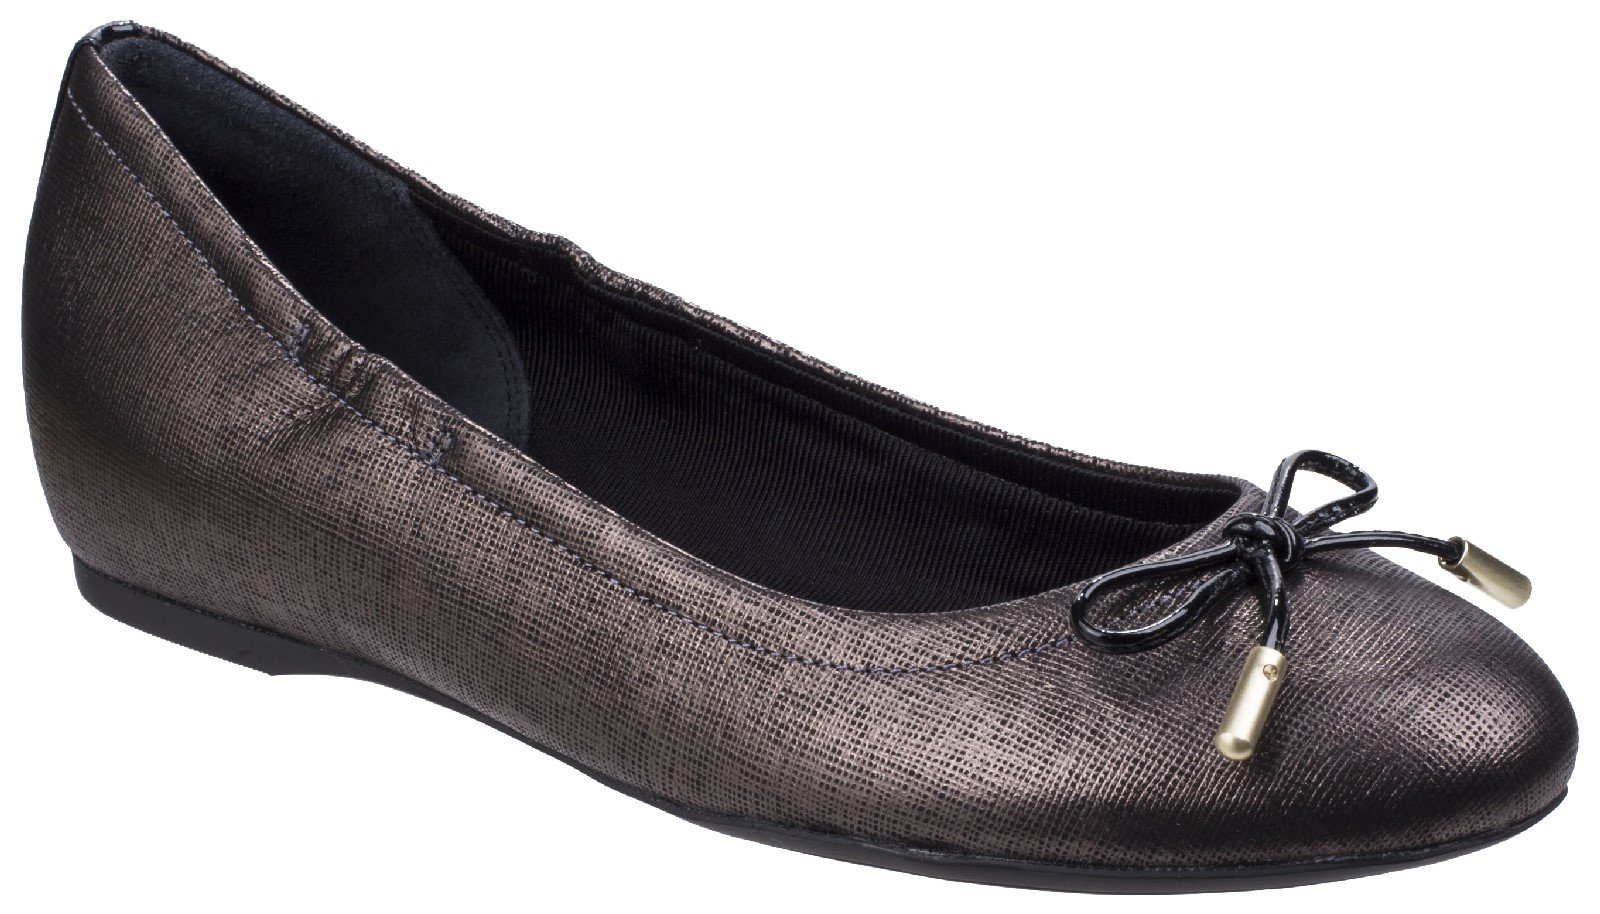 Rockport Women's Tied Ballet Flats Various Colours 26799 - Onyx 4